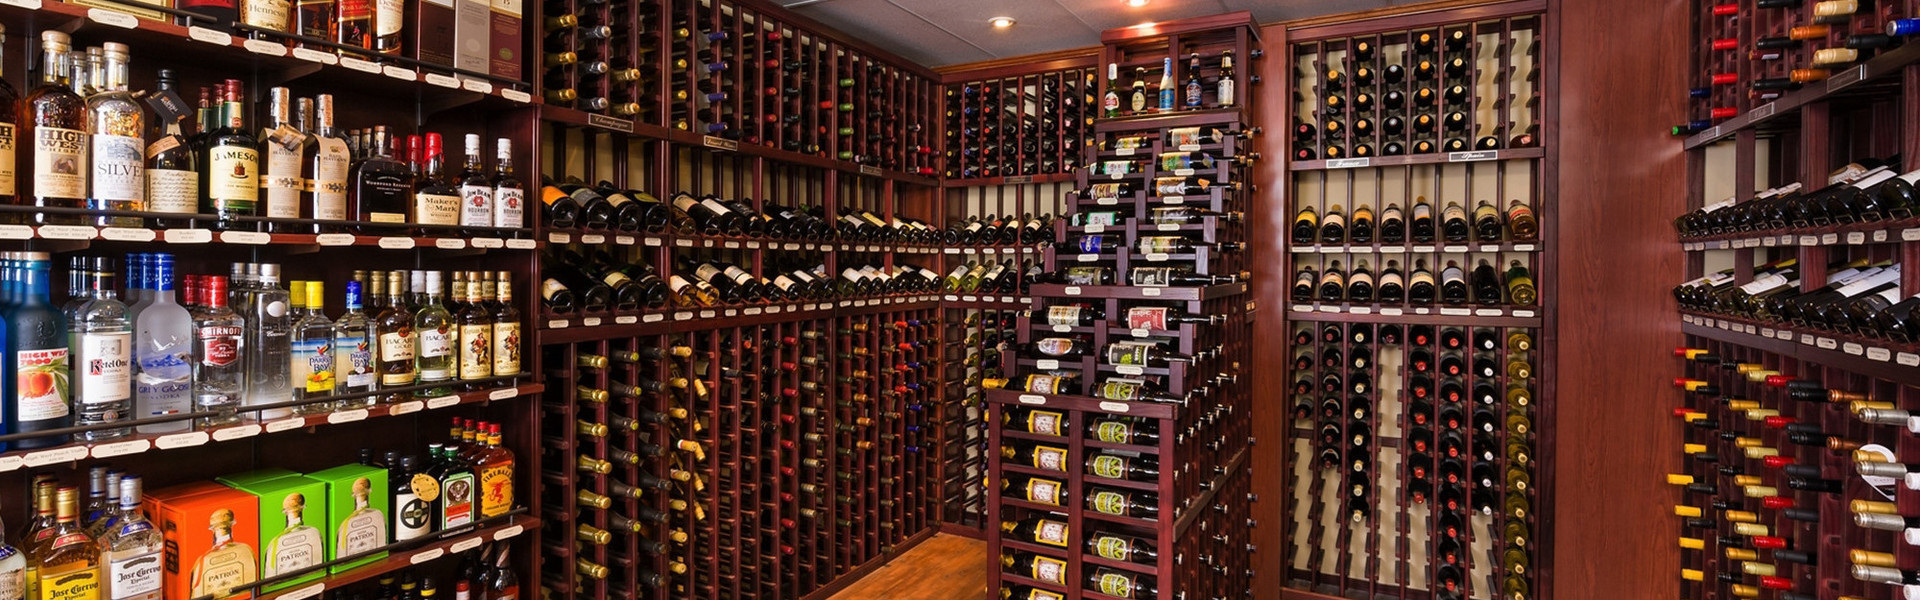 Marketplace in our Park City, Utah Hotel and Ski Resort | Liquor Store